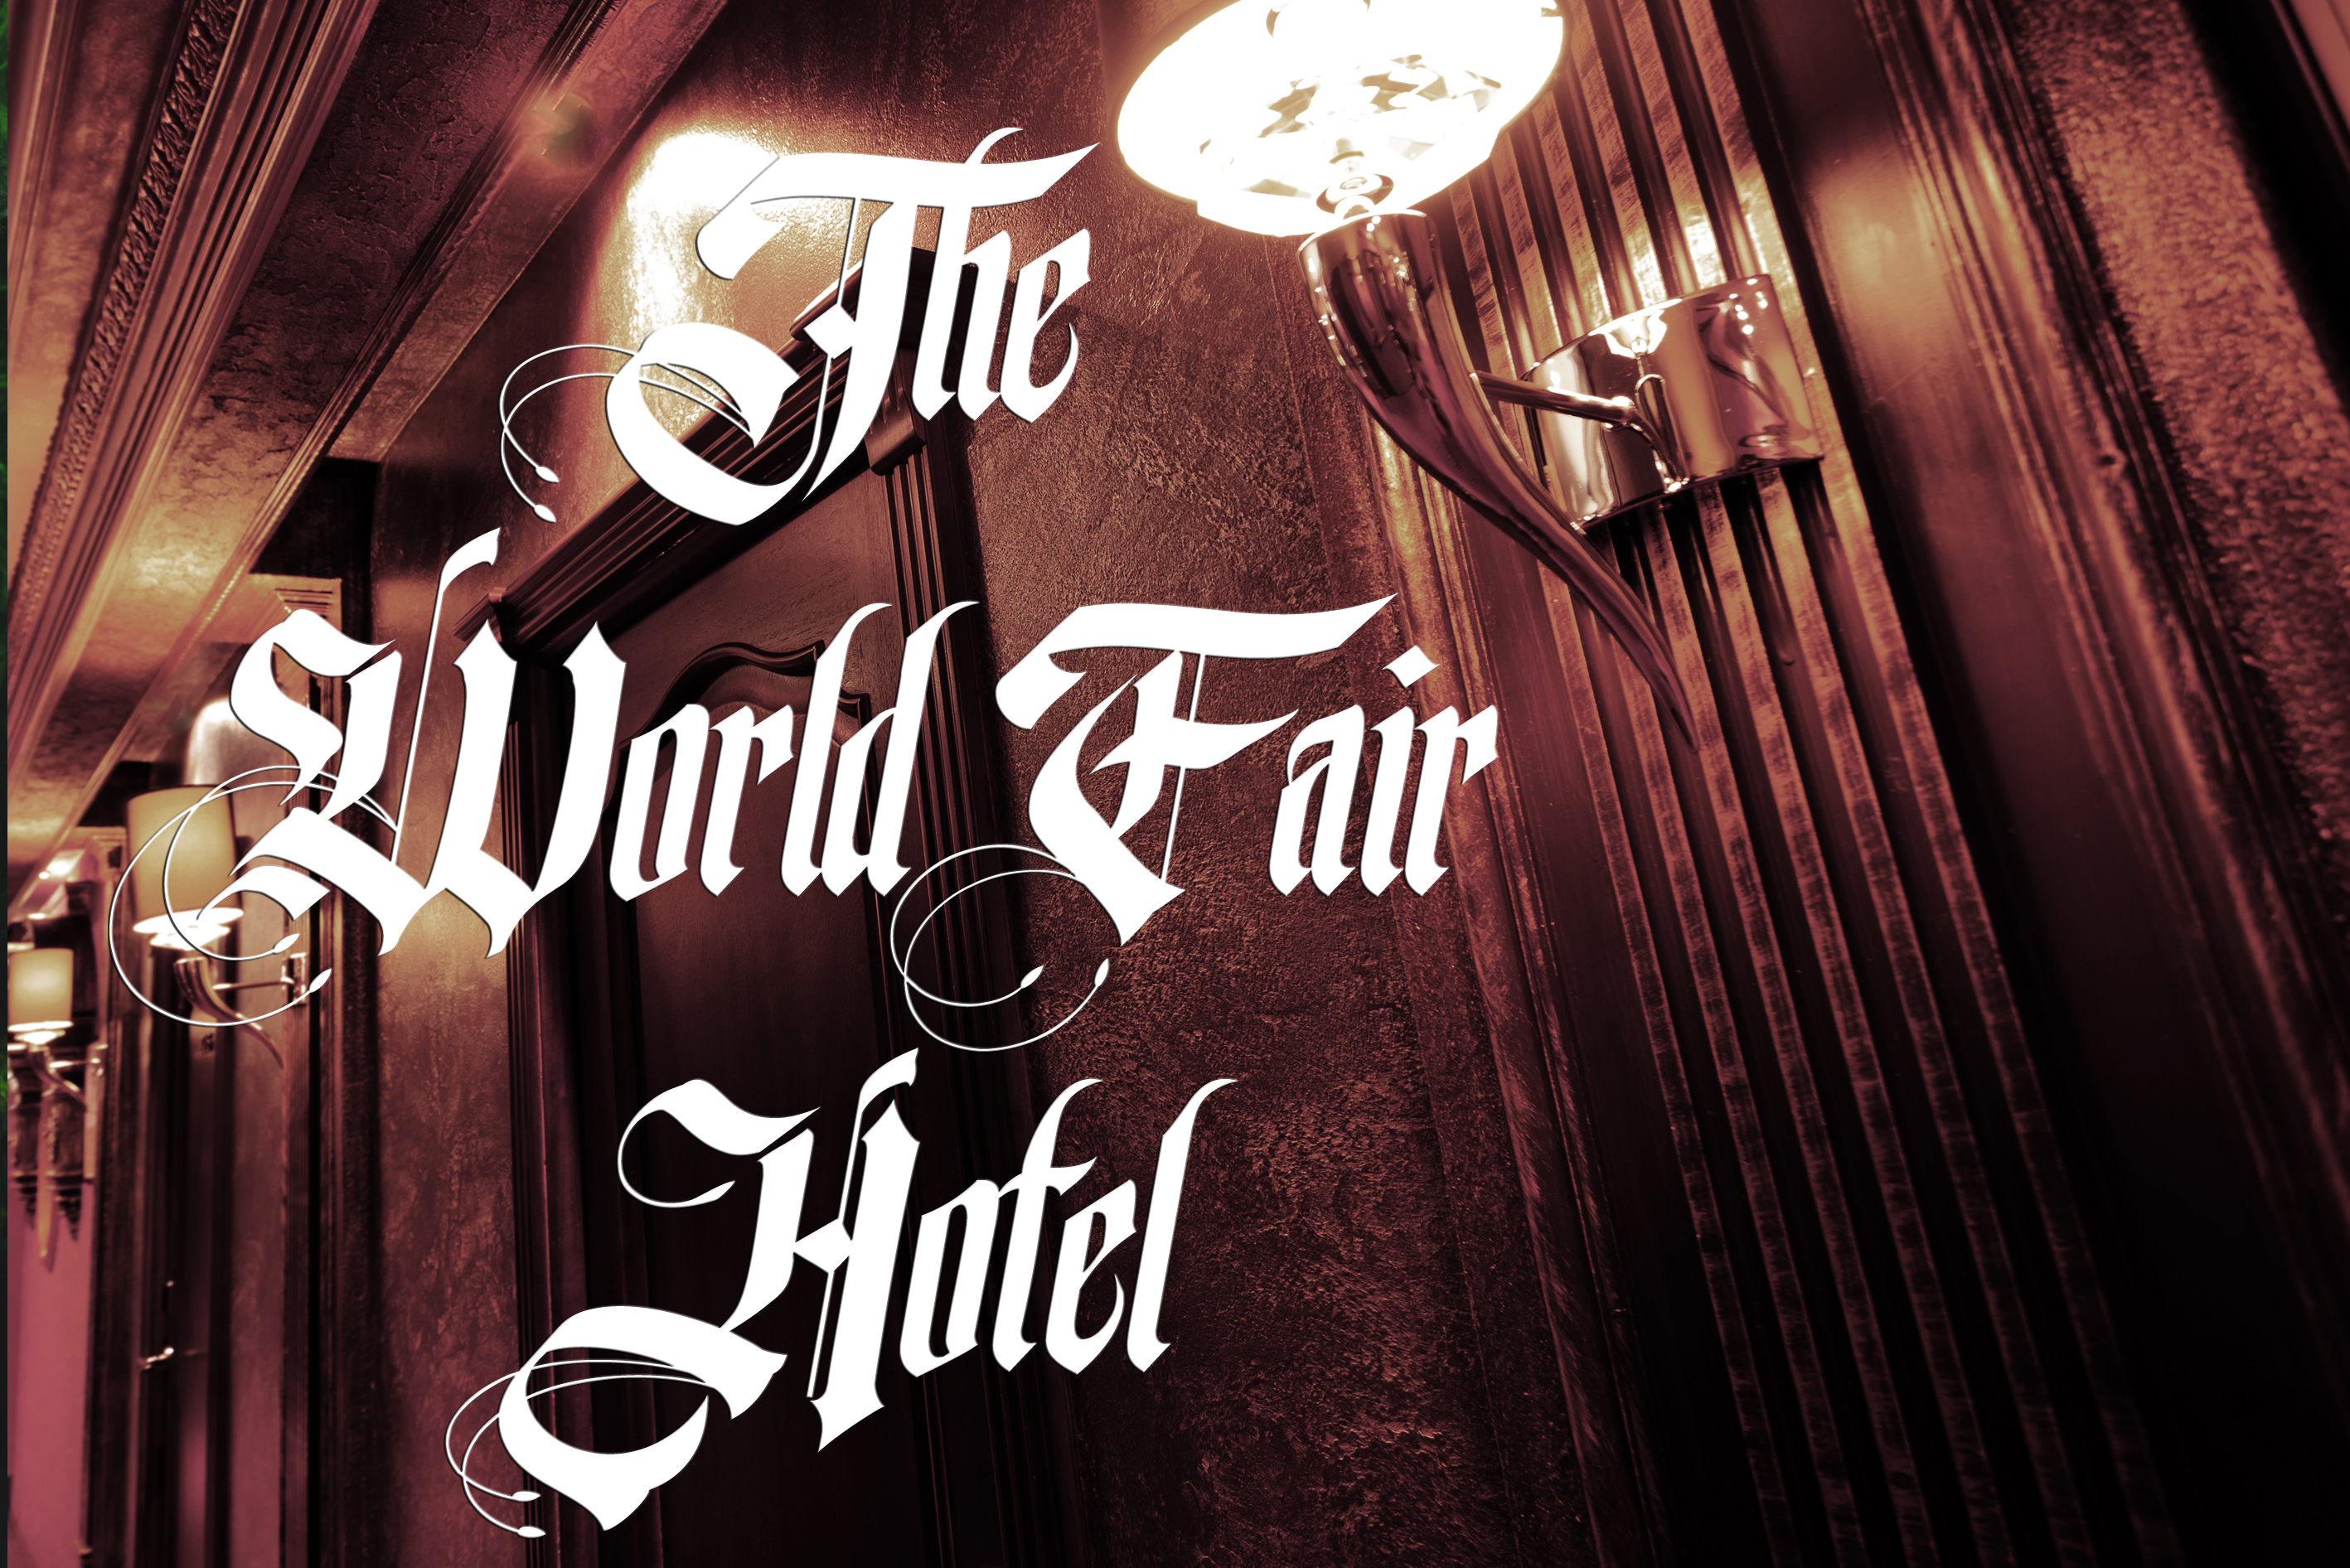 Get Lost Escape Rooms world fair hotel serial killer holmes